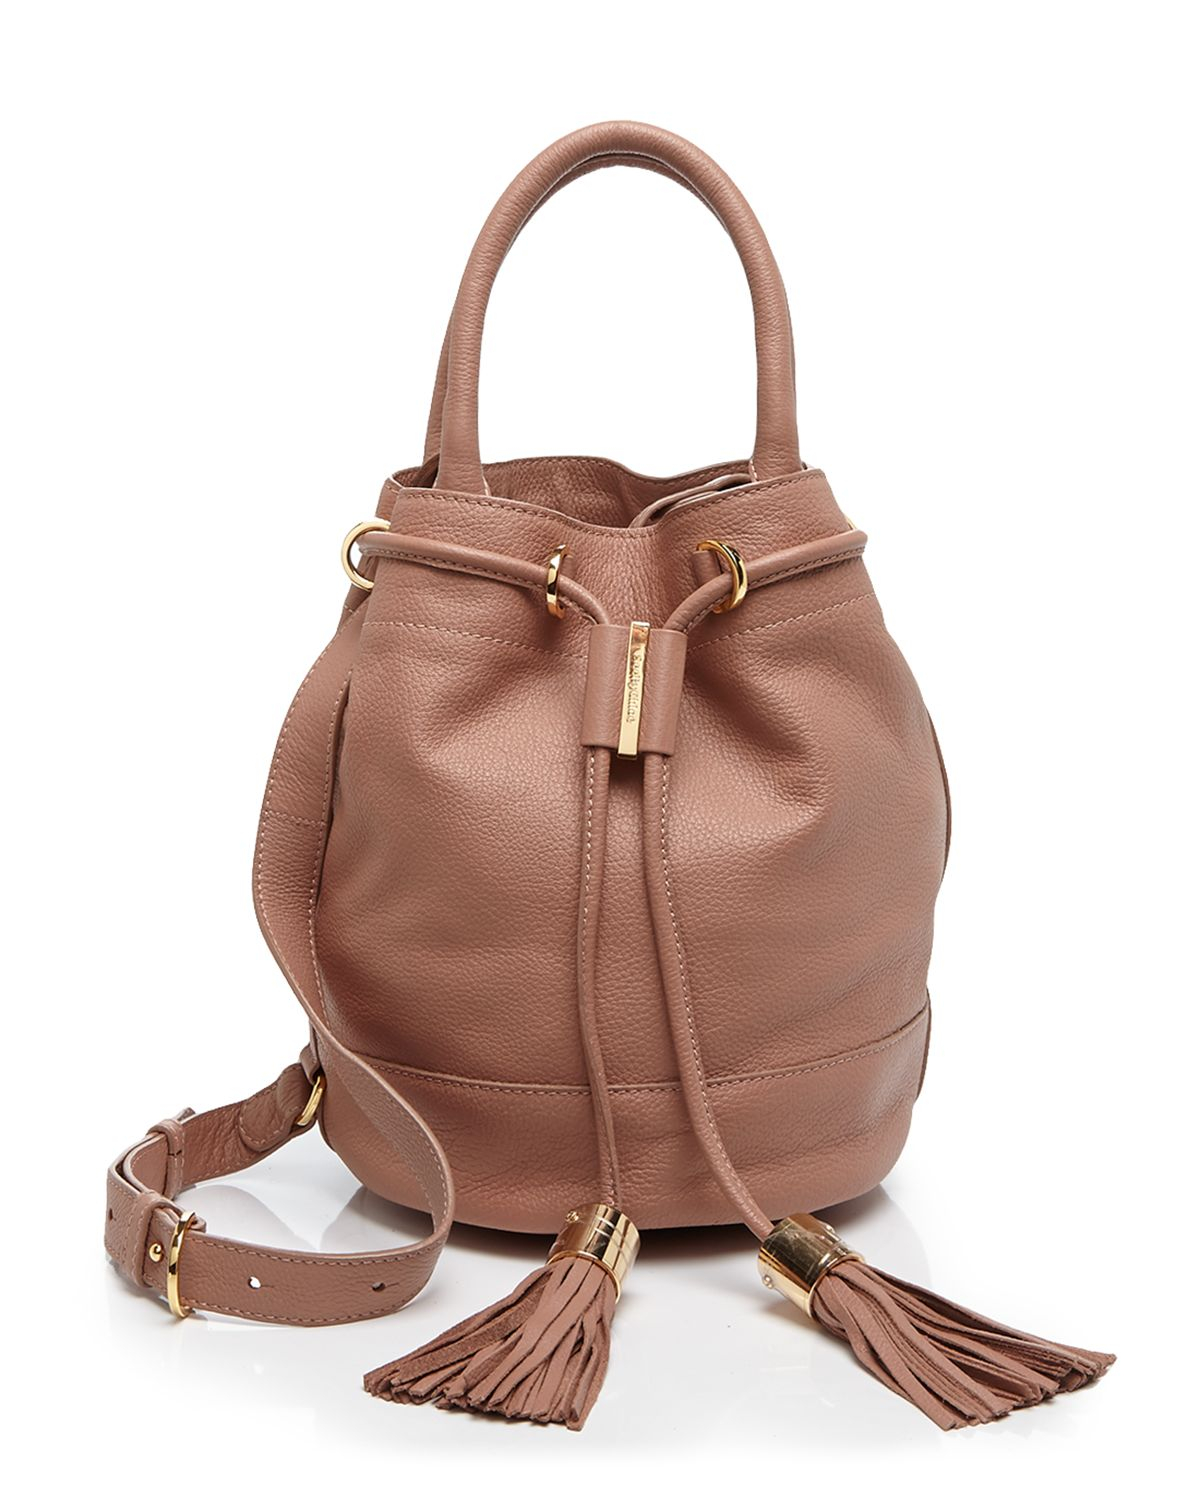 Bucket Bag for Summer